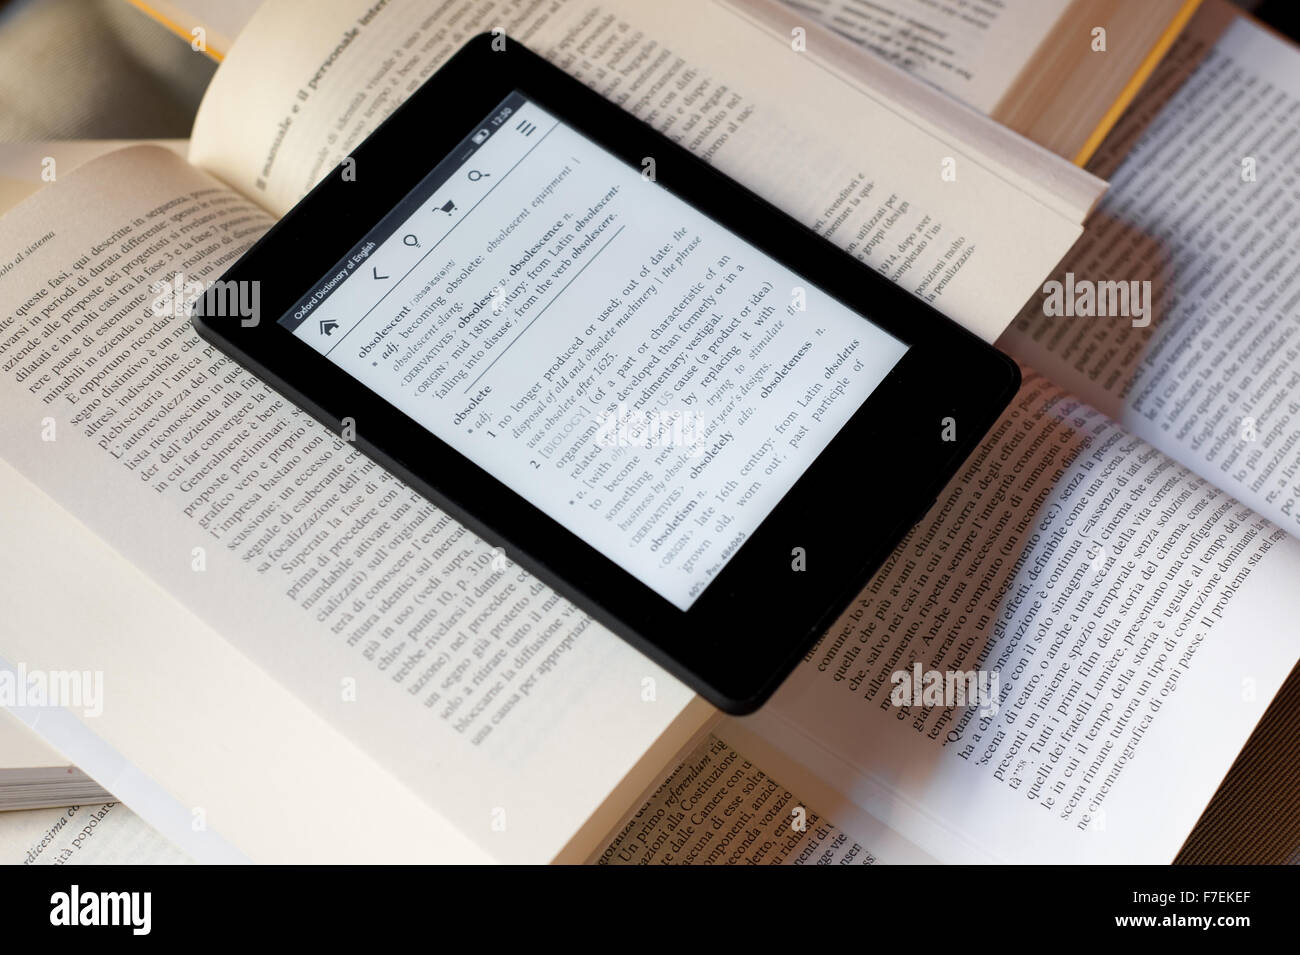 An ebook reader over several books - Stock Image